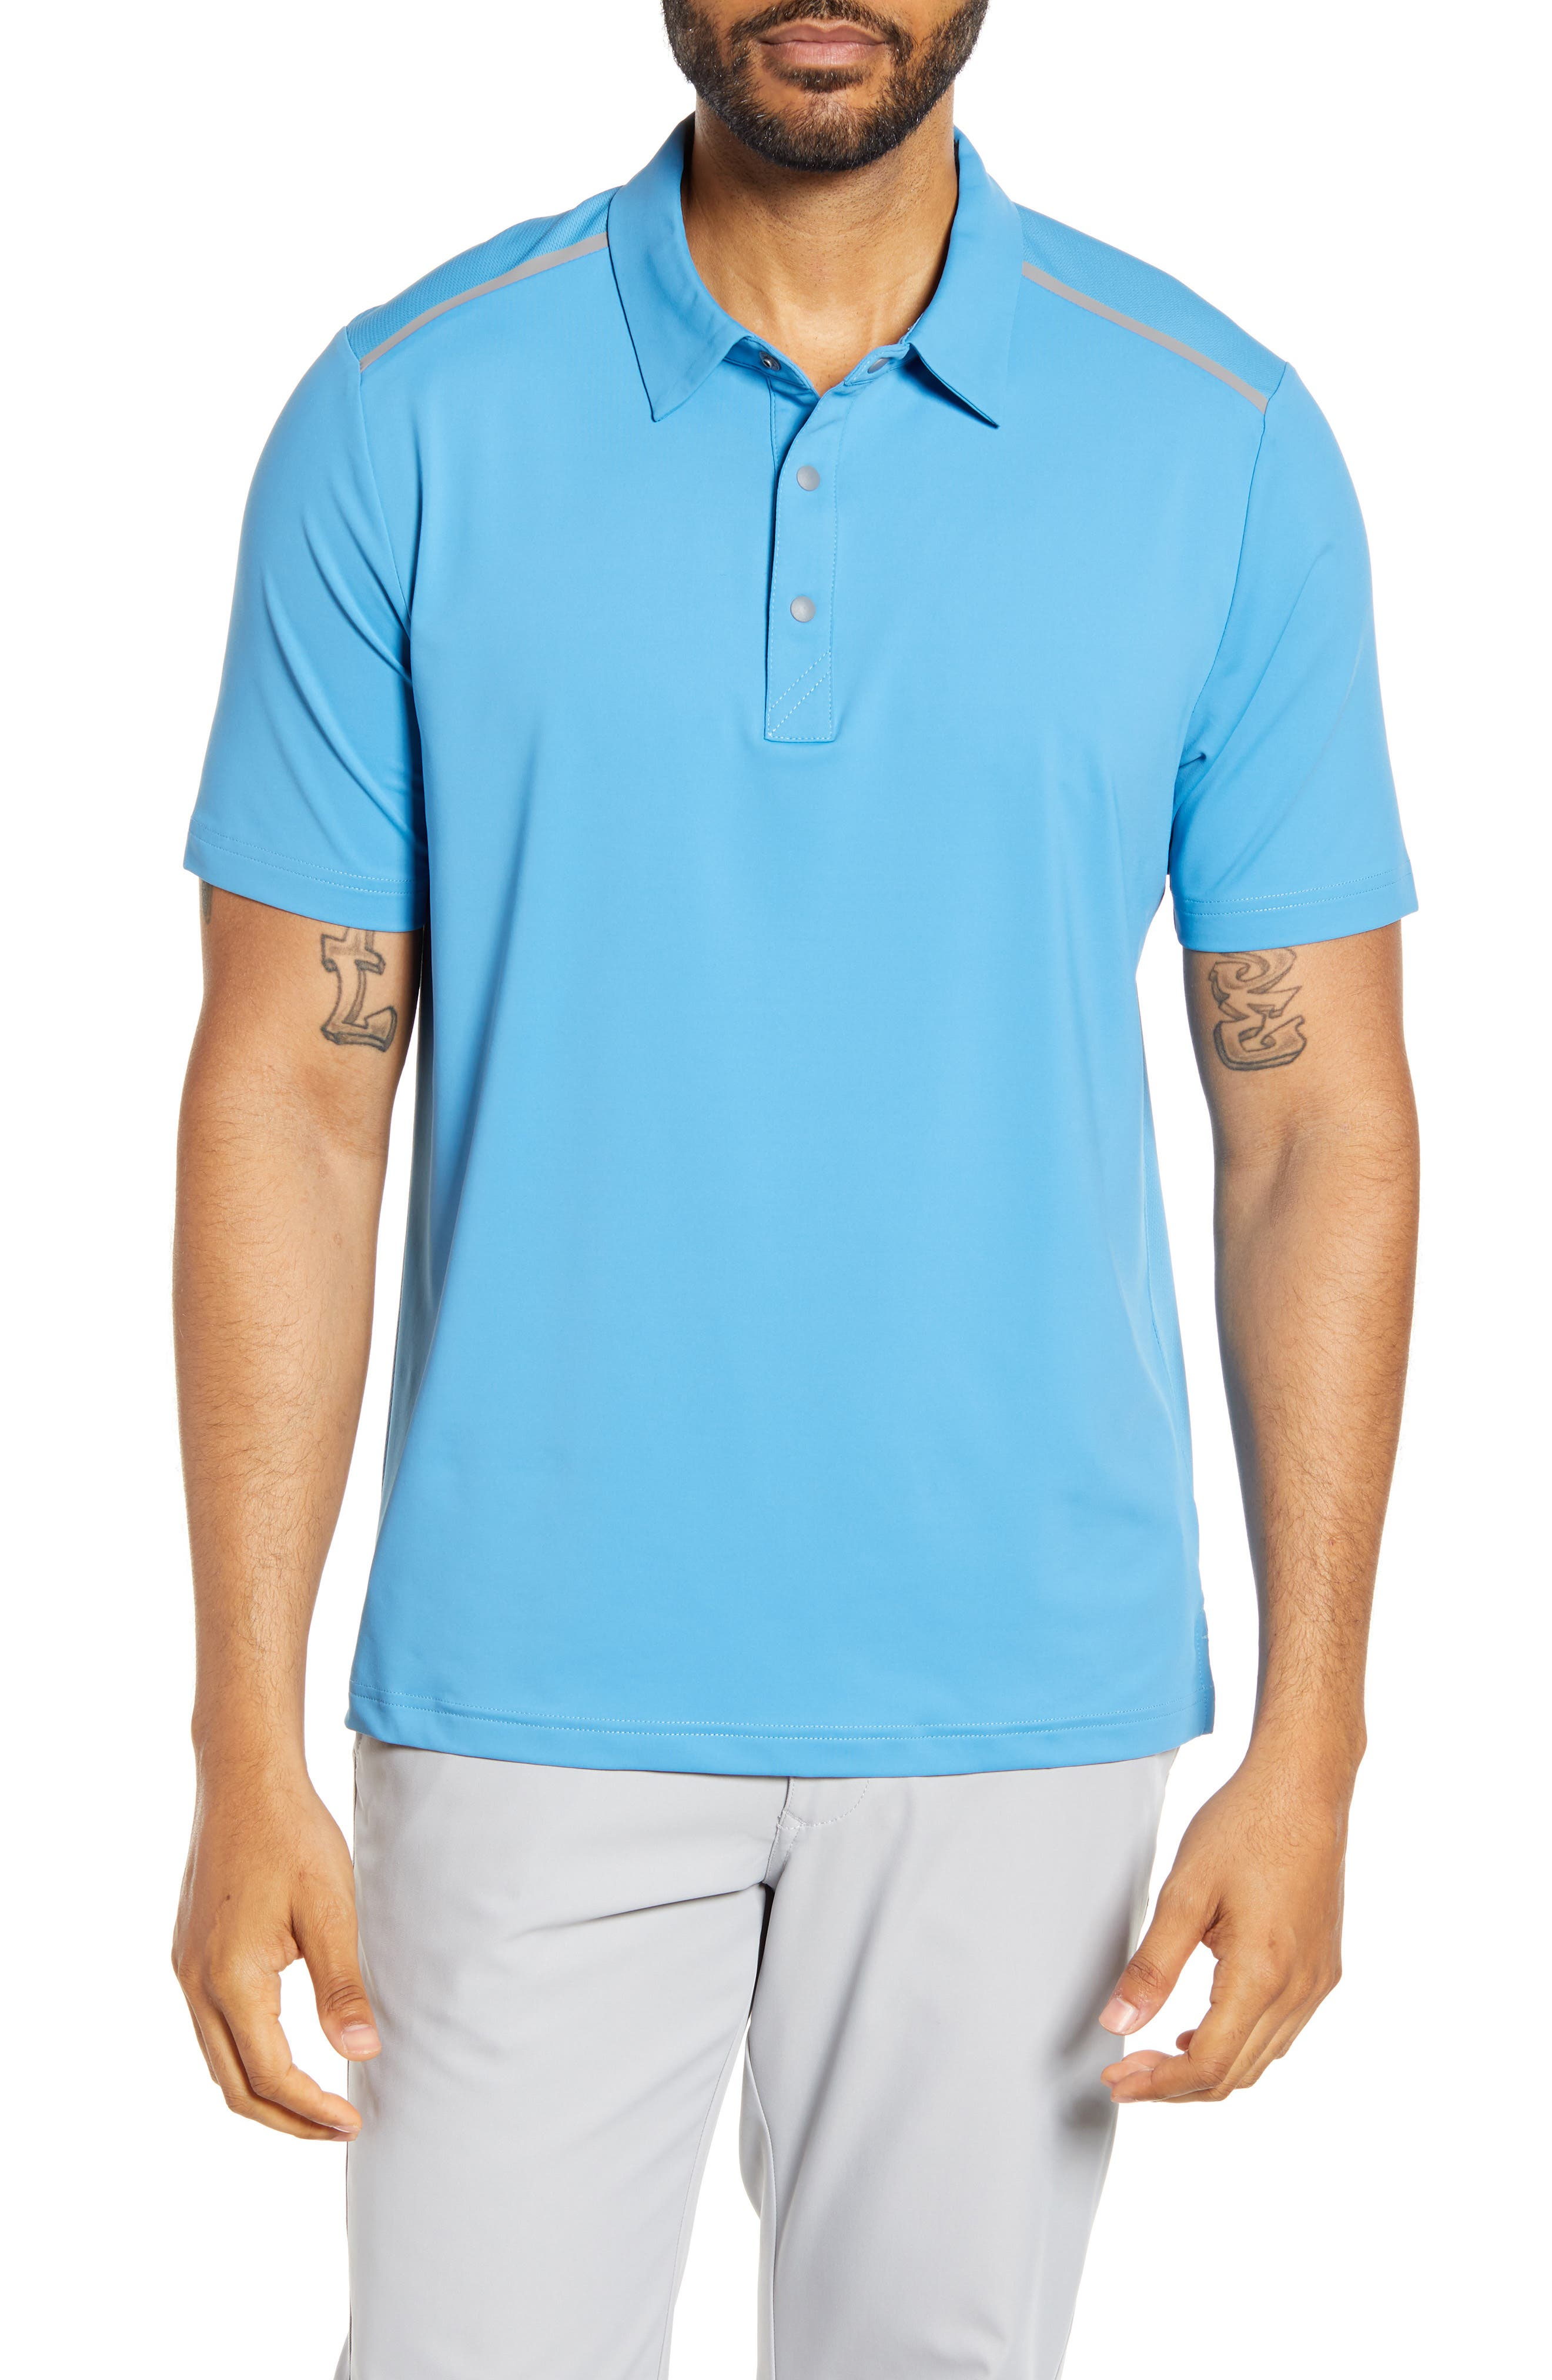 Contrasting shoulder stripes change up a classic polo, designed with moisture-wicking technology to keep you cool all day long. Style Name: Cutter & Buck Fusion Classic Fit Polo. Style Number: 5582473. Available in stores.